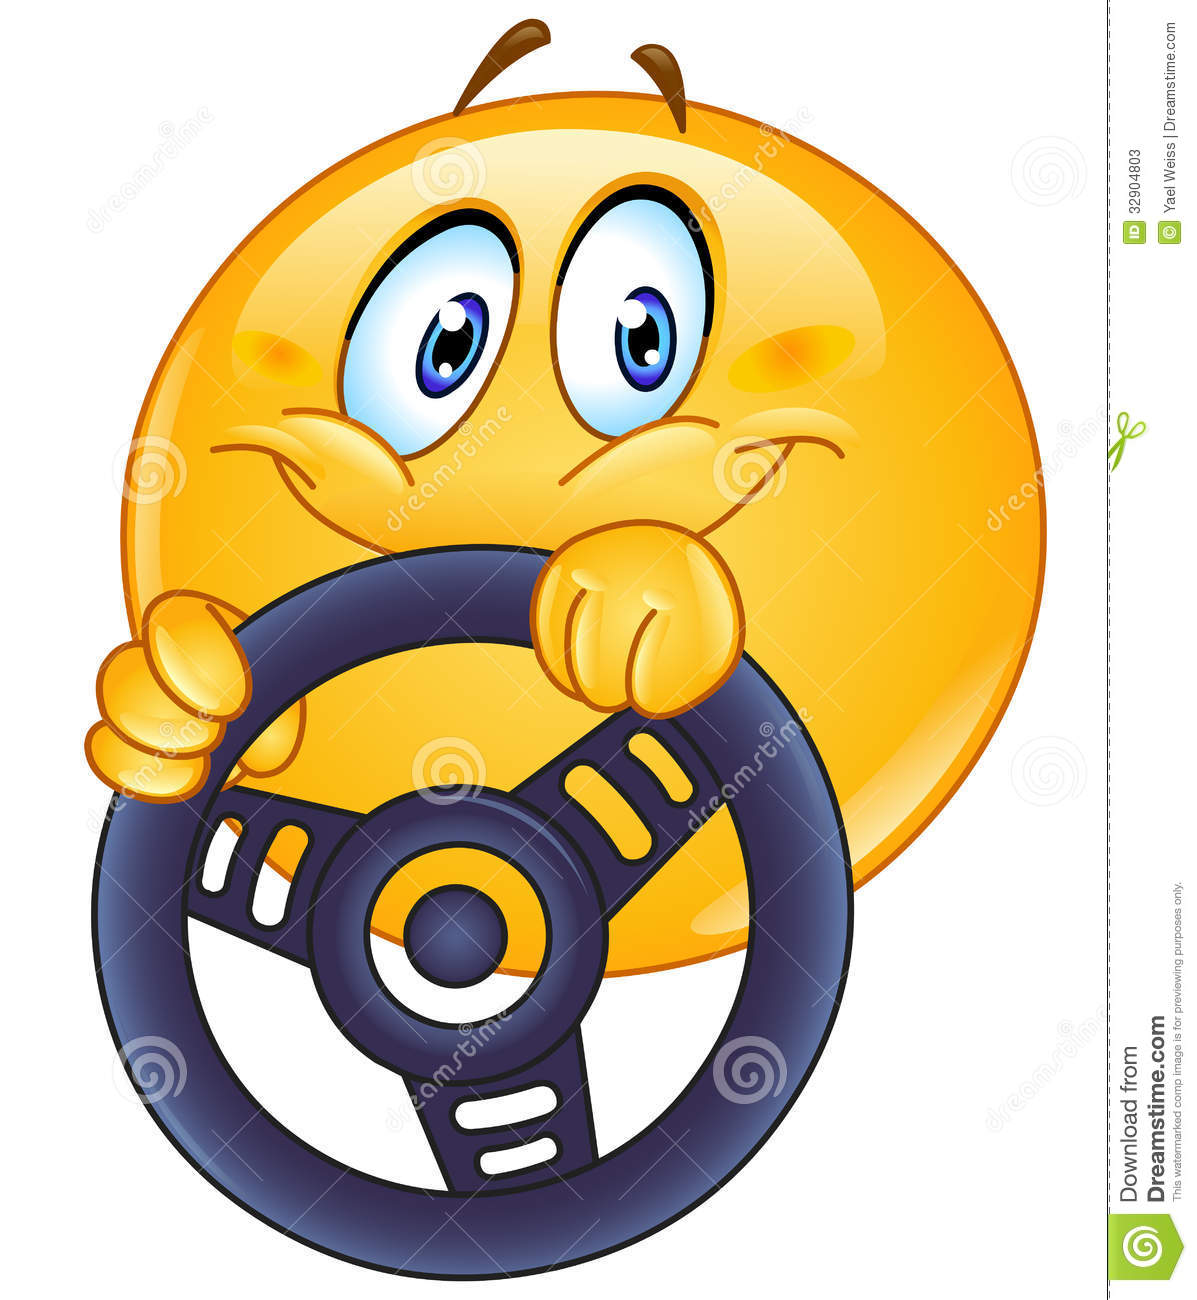 Driving Emoticon Stock Photos - Image: 32904803